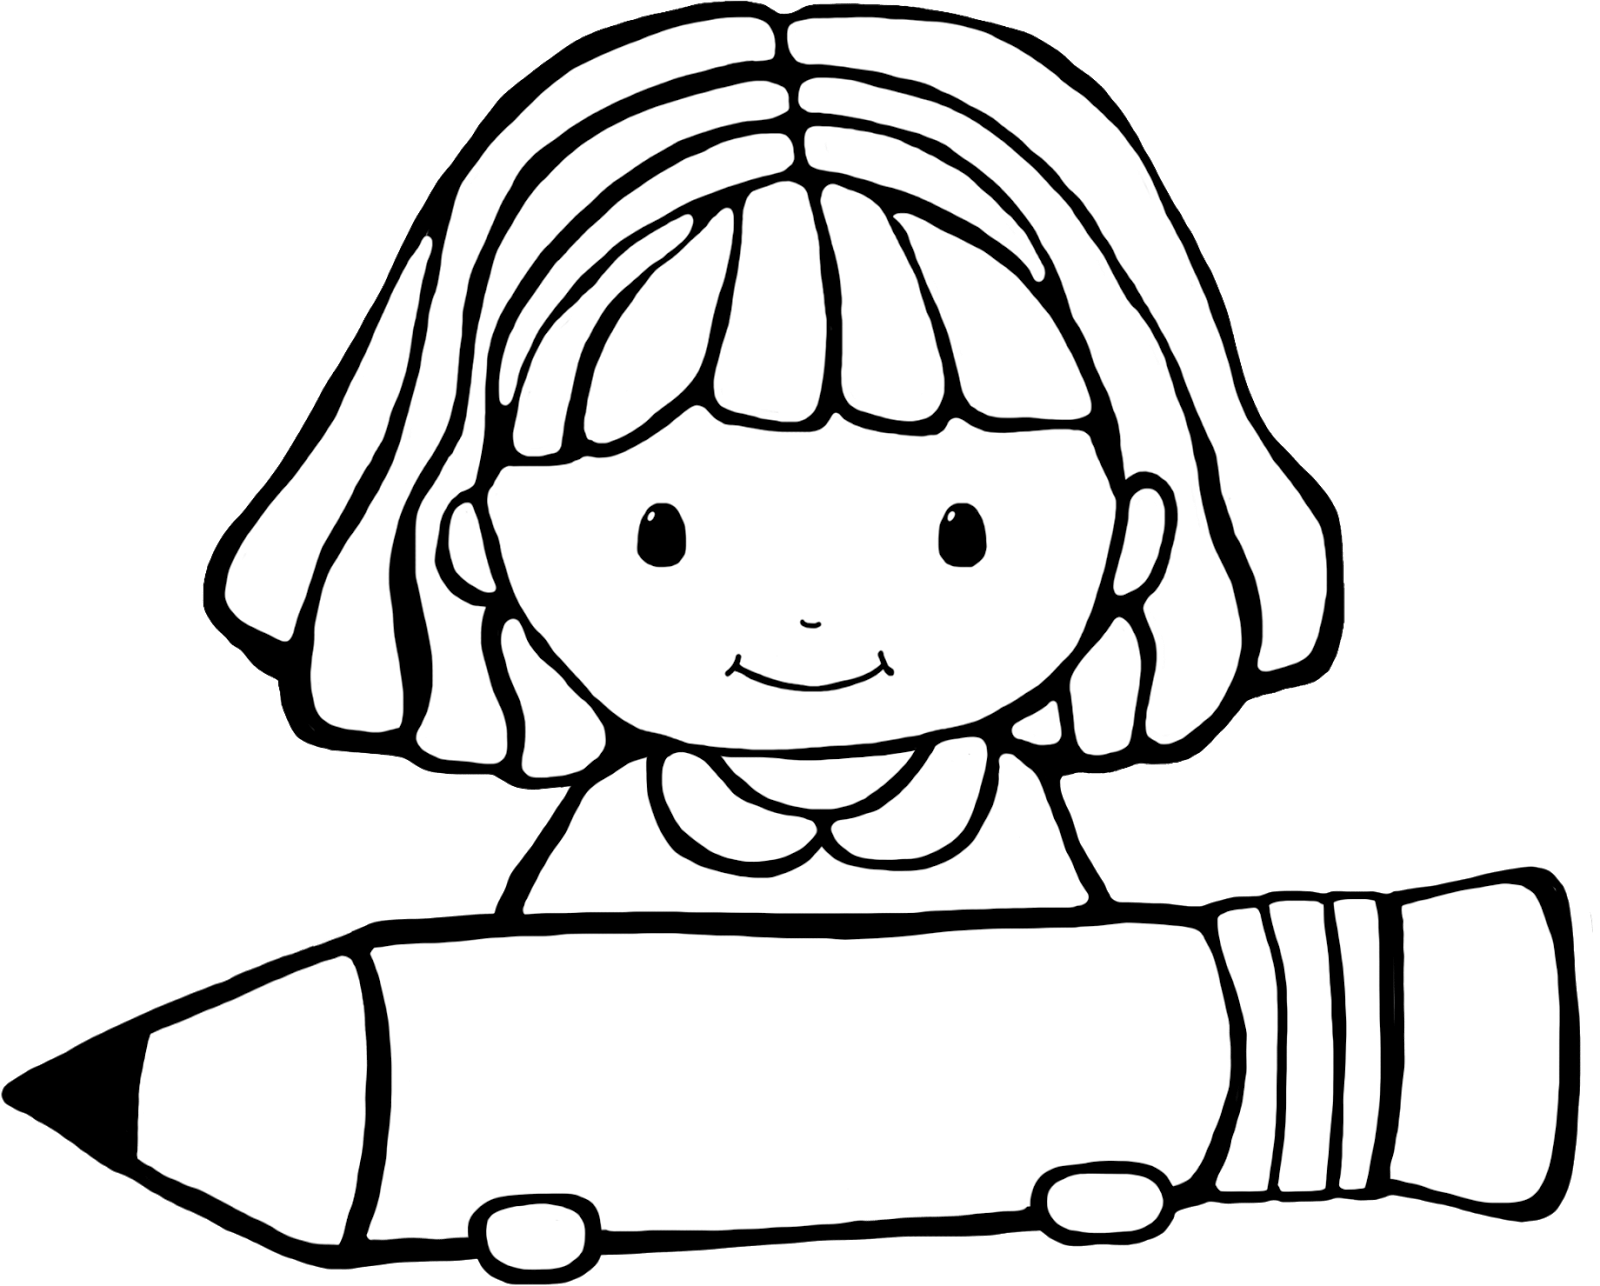 Cute Girl Clipart Black And Whitw 20 Free Cliparts